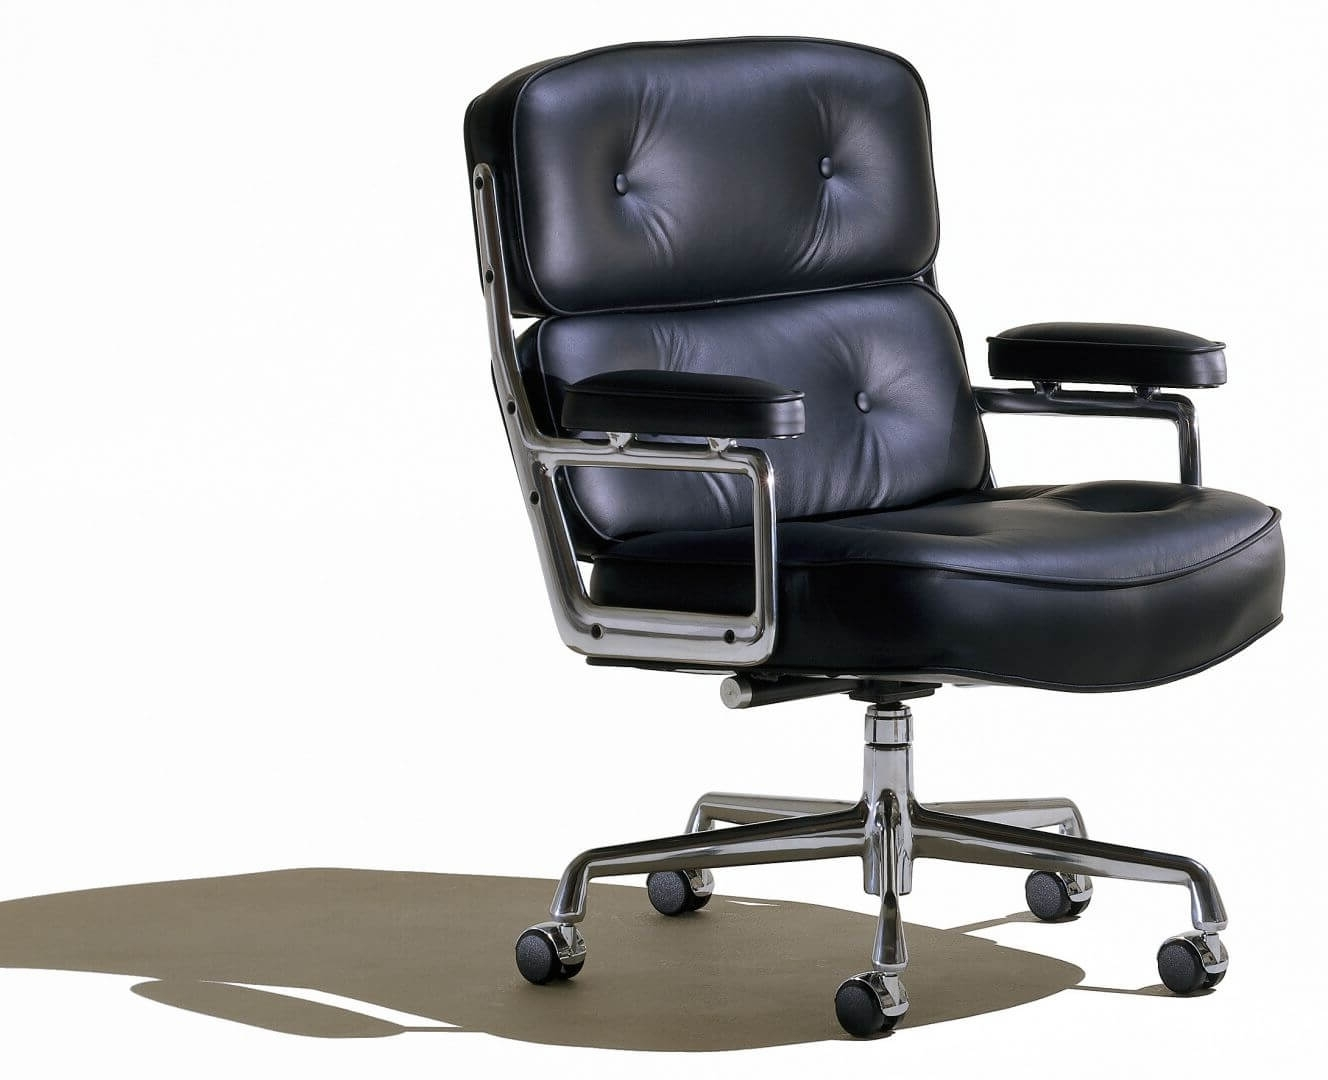 Widely Used Office Chair Guide & How To Buy A Desk Chair + Top 10 Chairs With Regard To High End Executive Office Chairs (View 20 of 20)